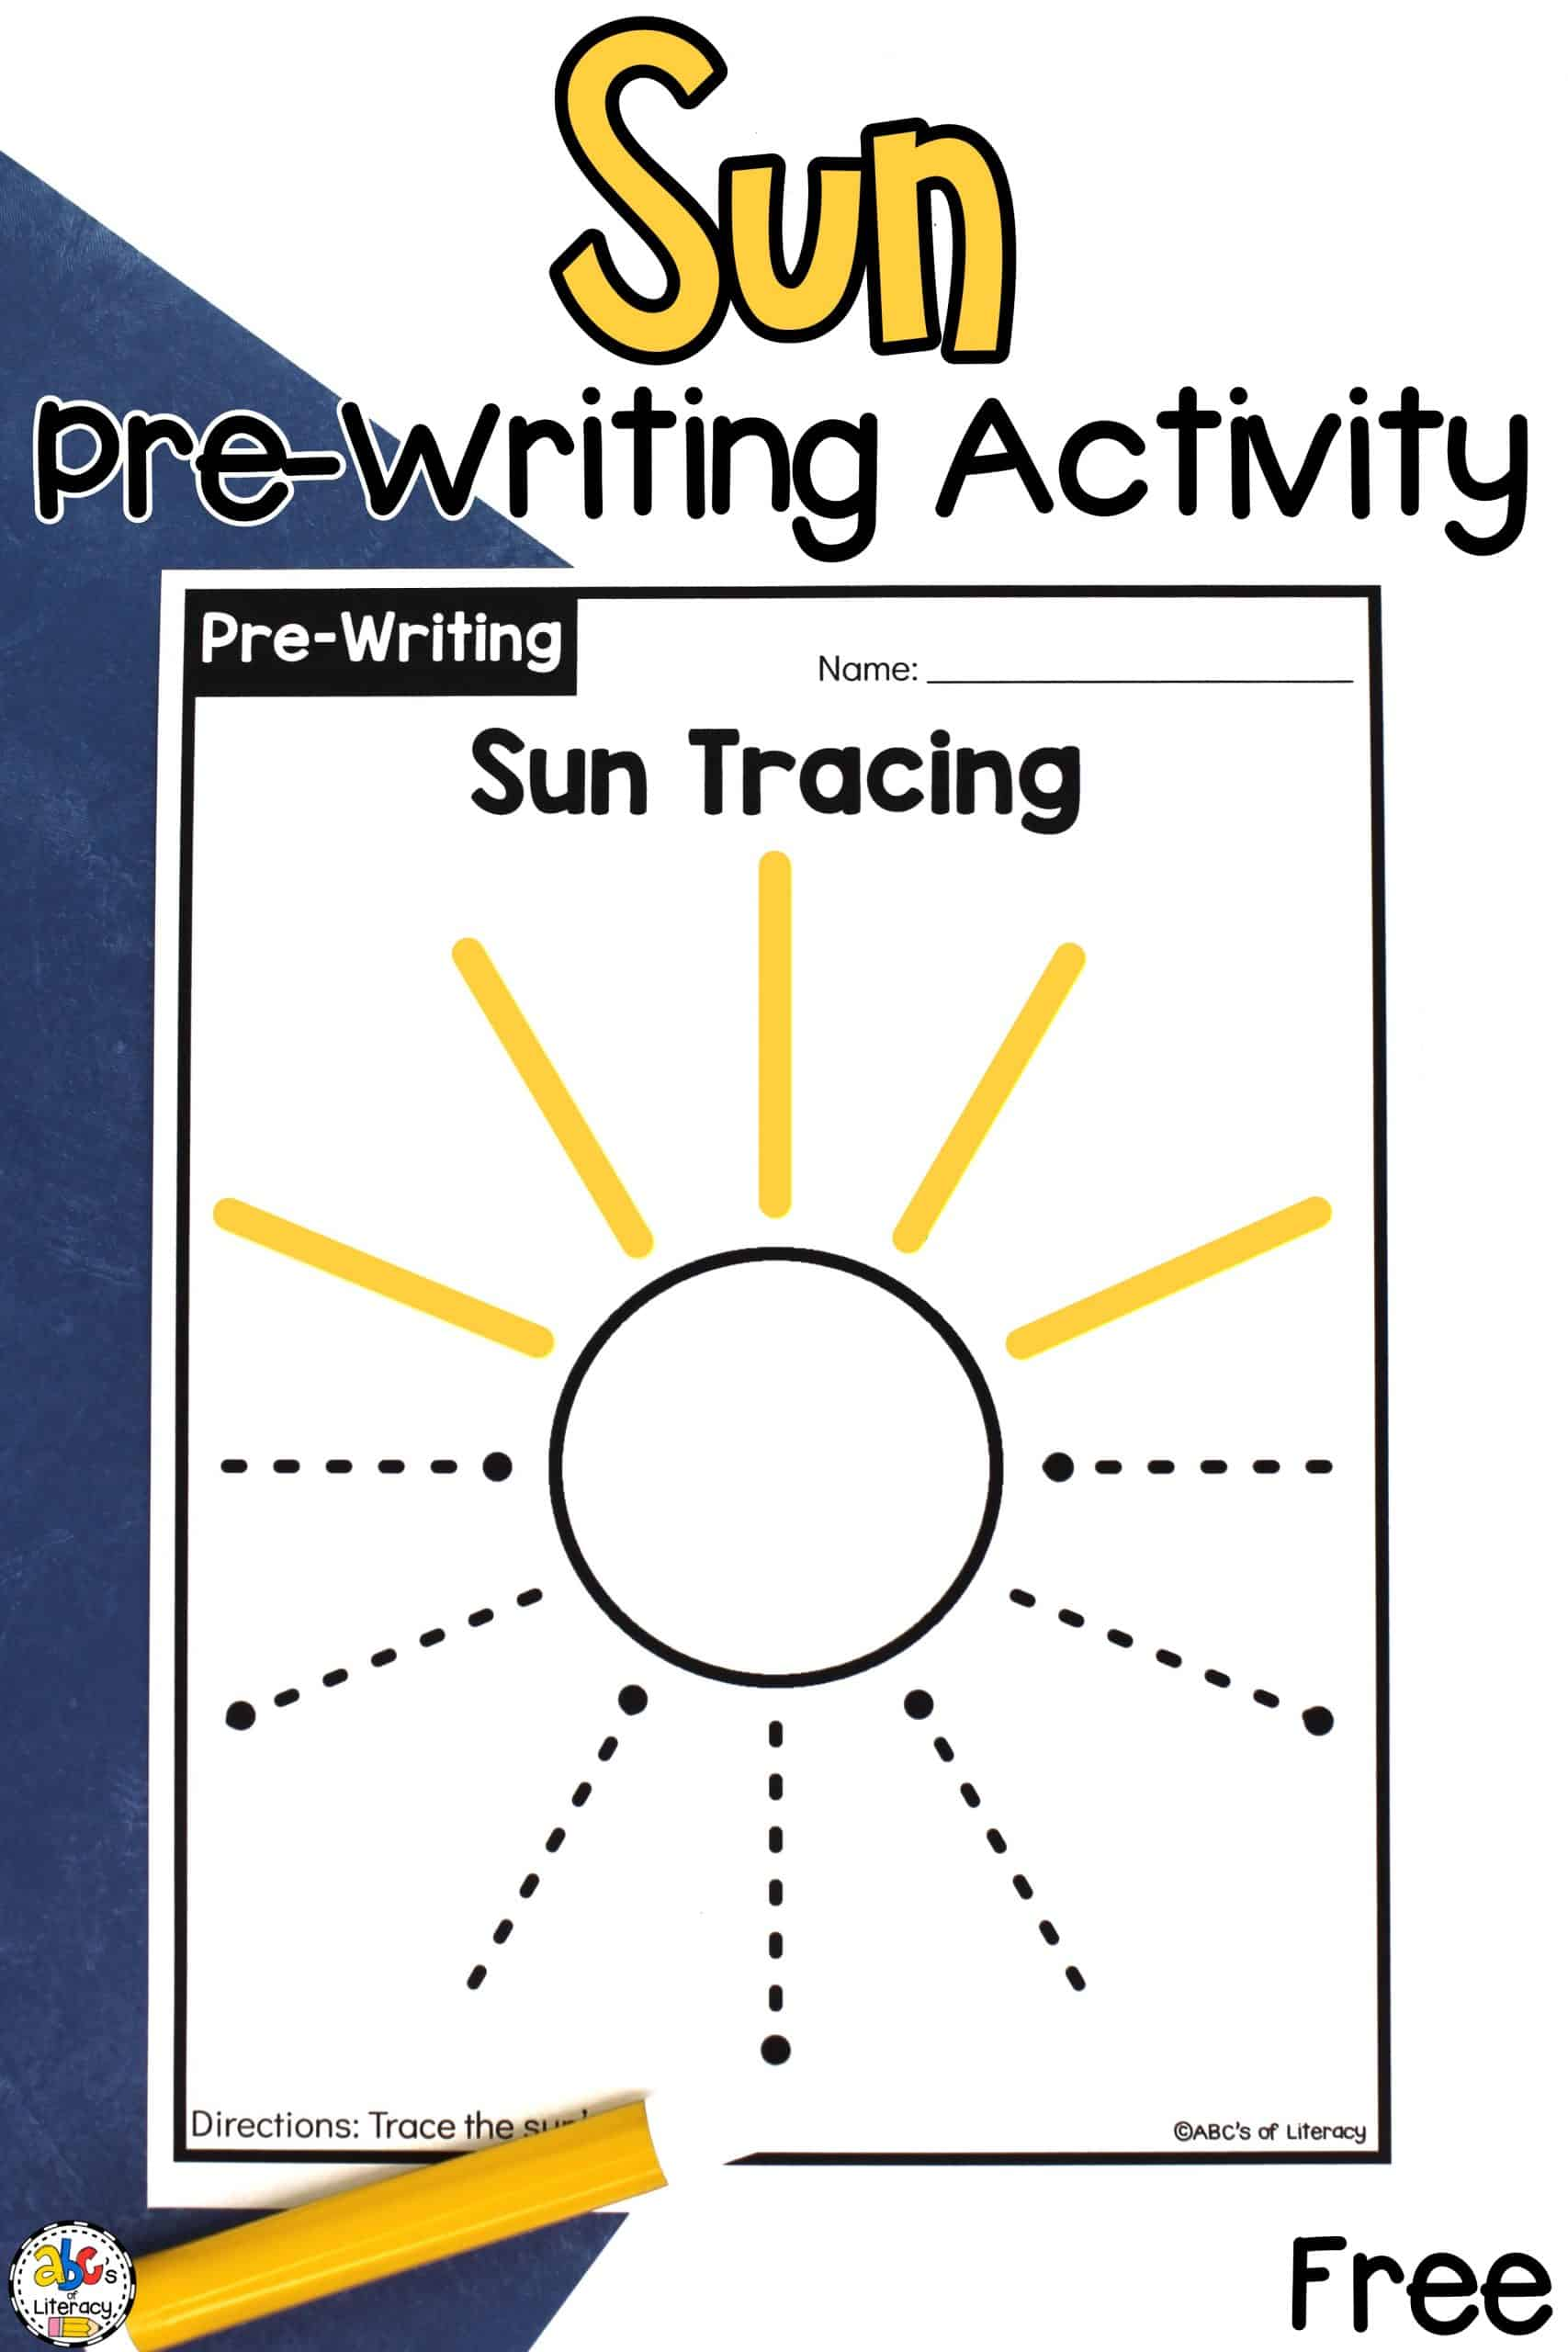 Sun Tracing Worksheets: Pre-Writing Activity